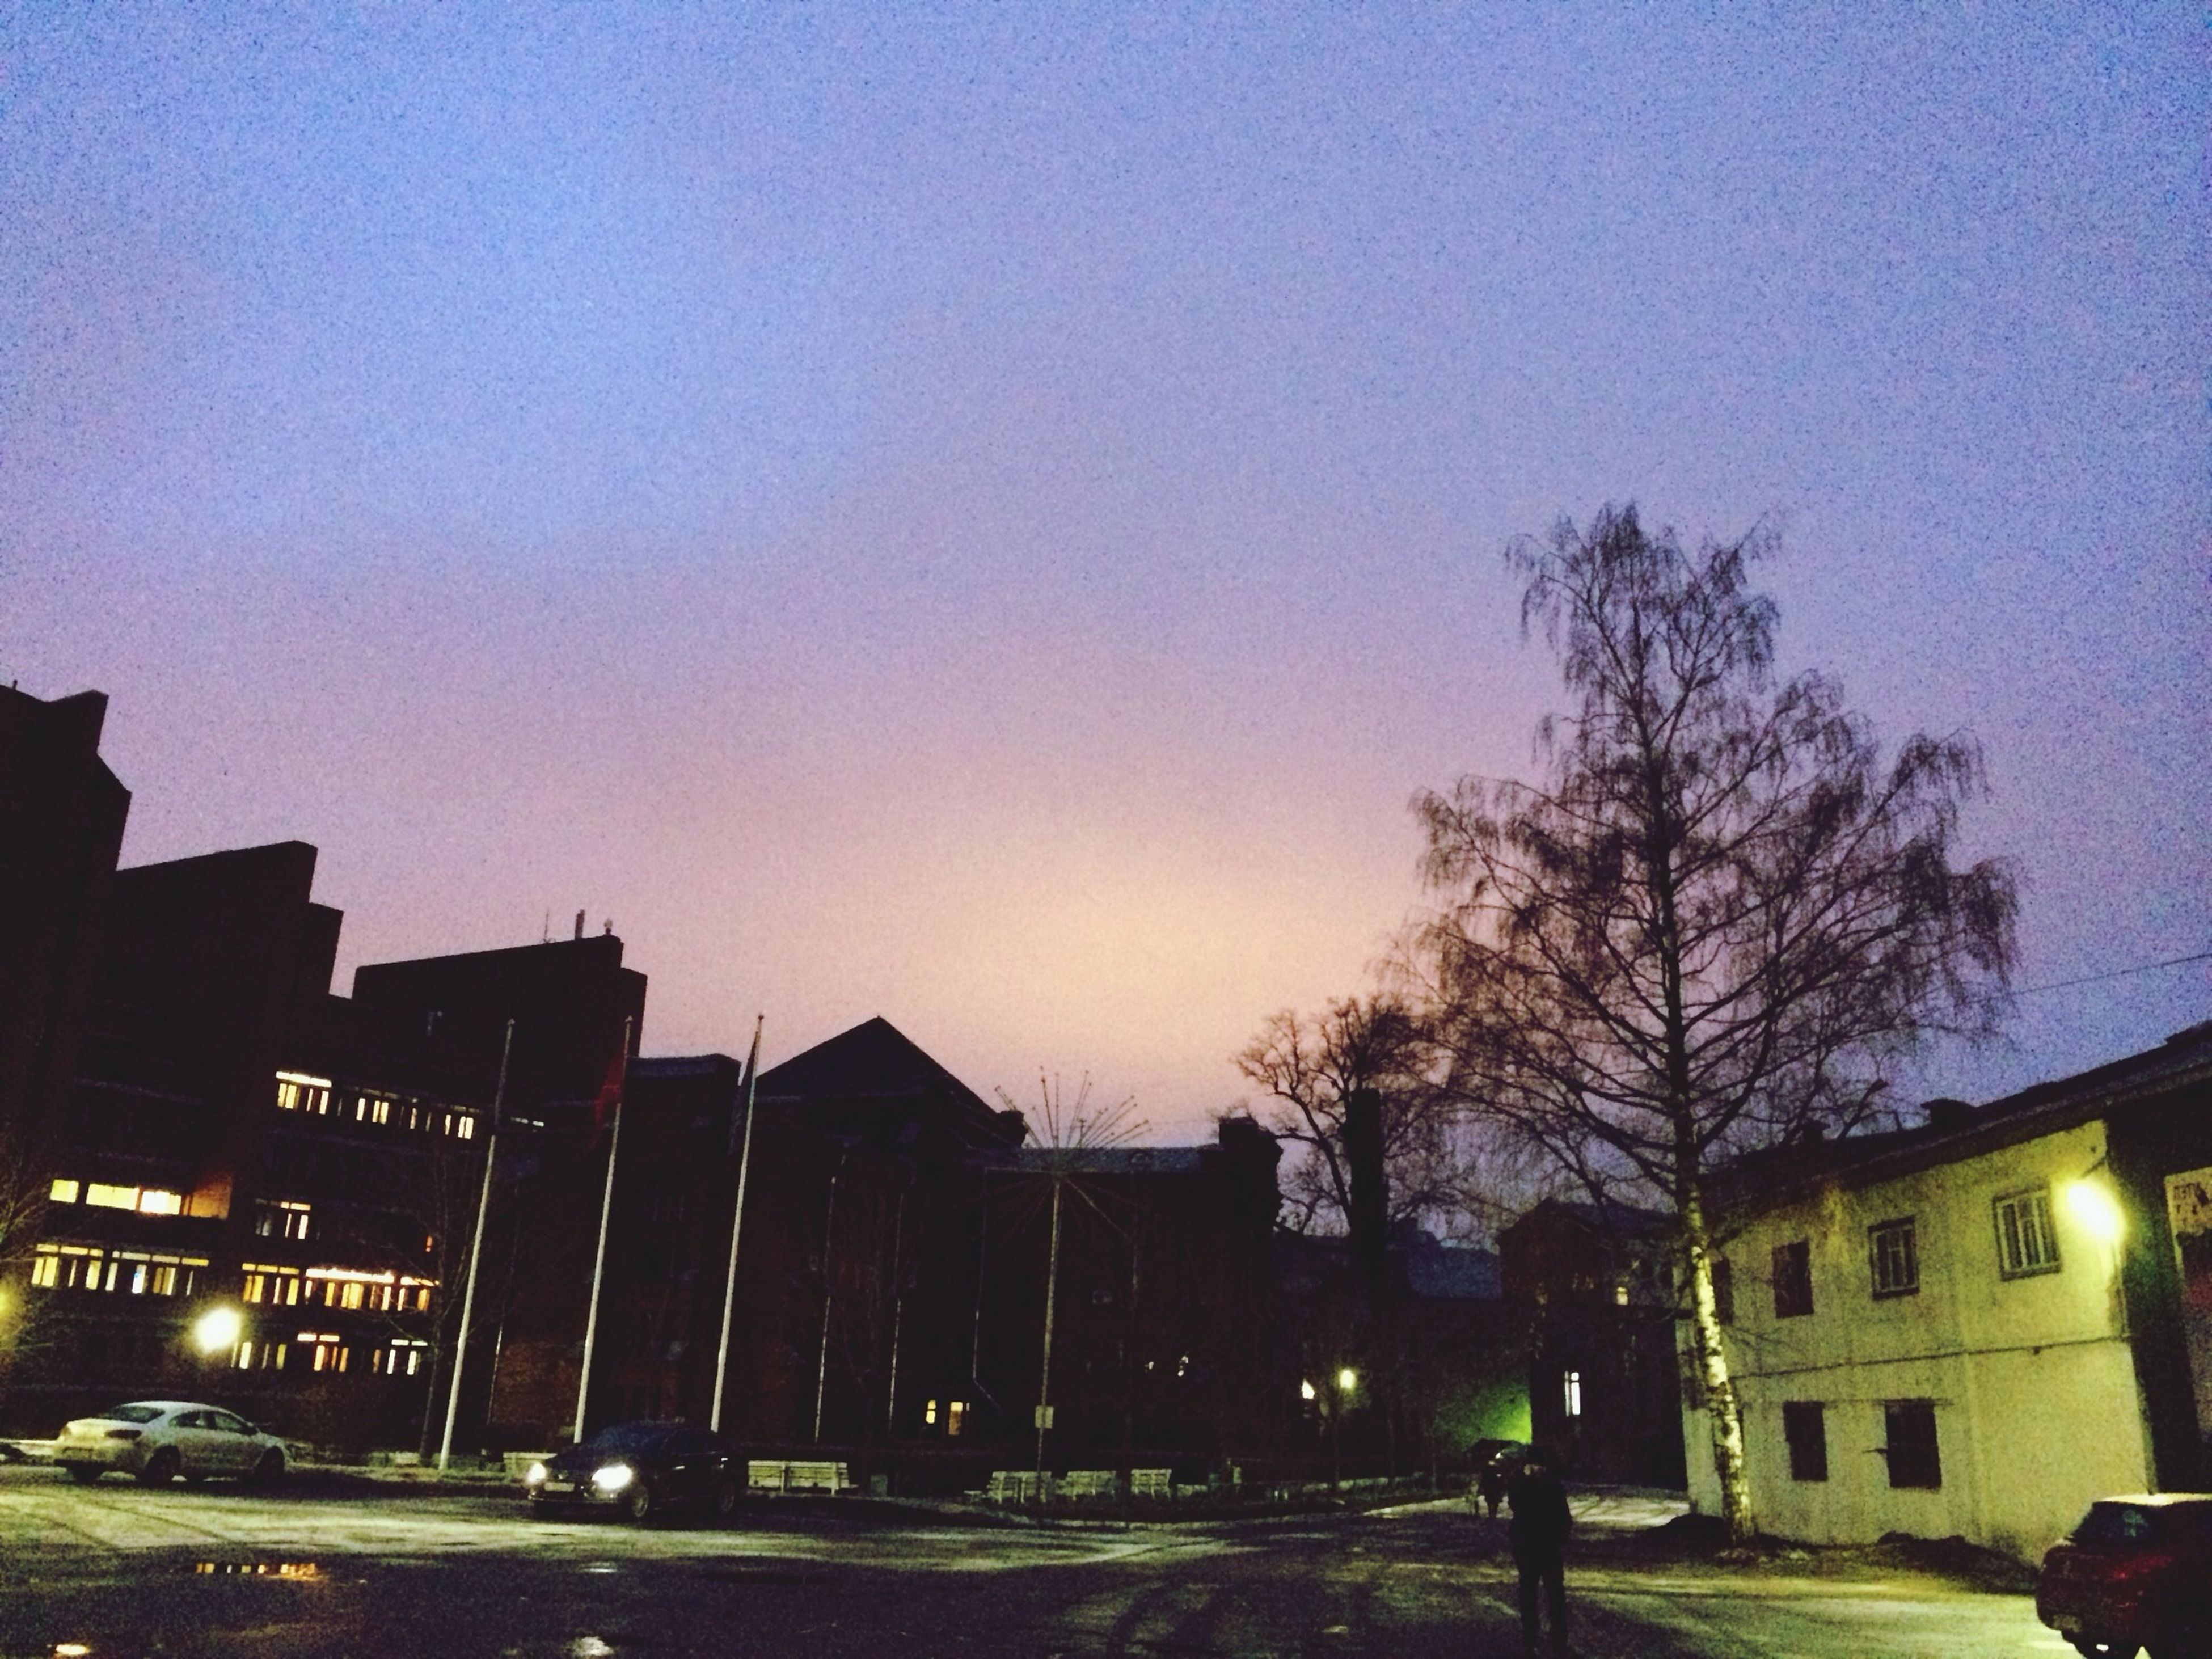 building exterior, architecture, built structure, city, illuminated, tree, residential structure, sunset, clear sky, residential building, street, silhouette, house, dusk, street light, sky, building, night, bare tree, copy space